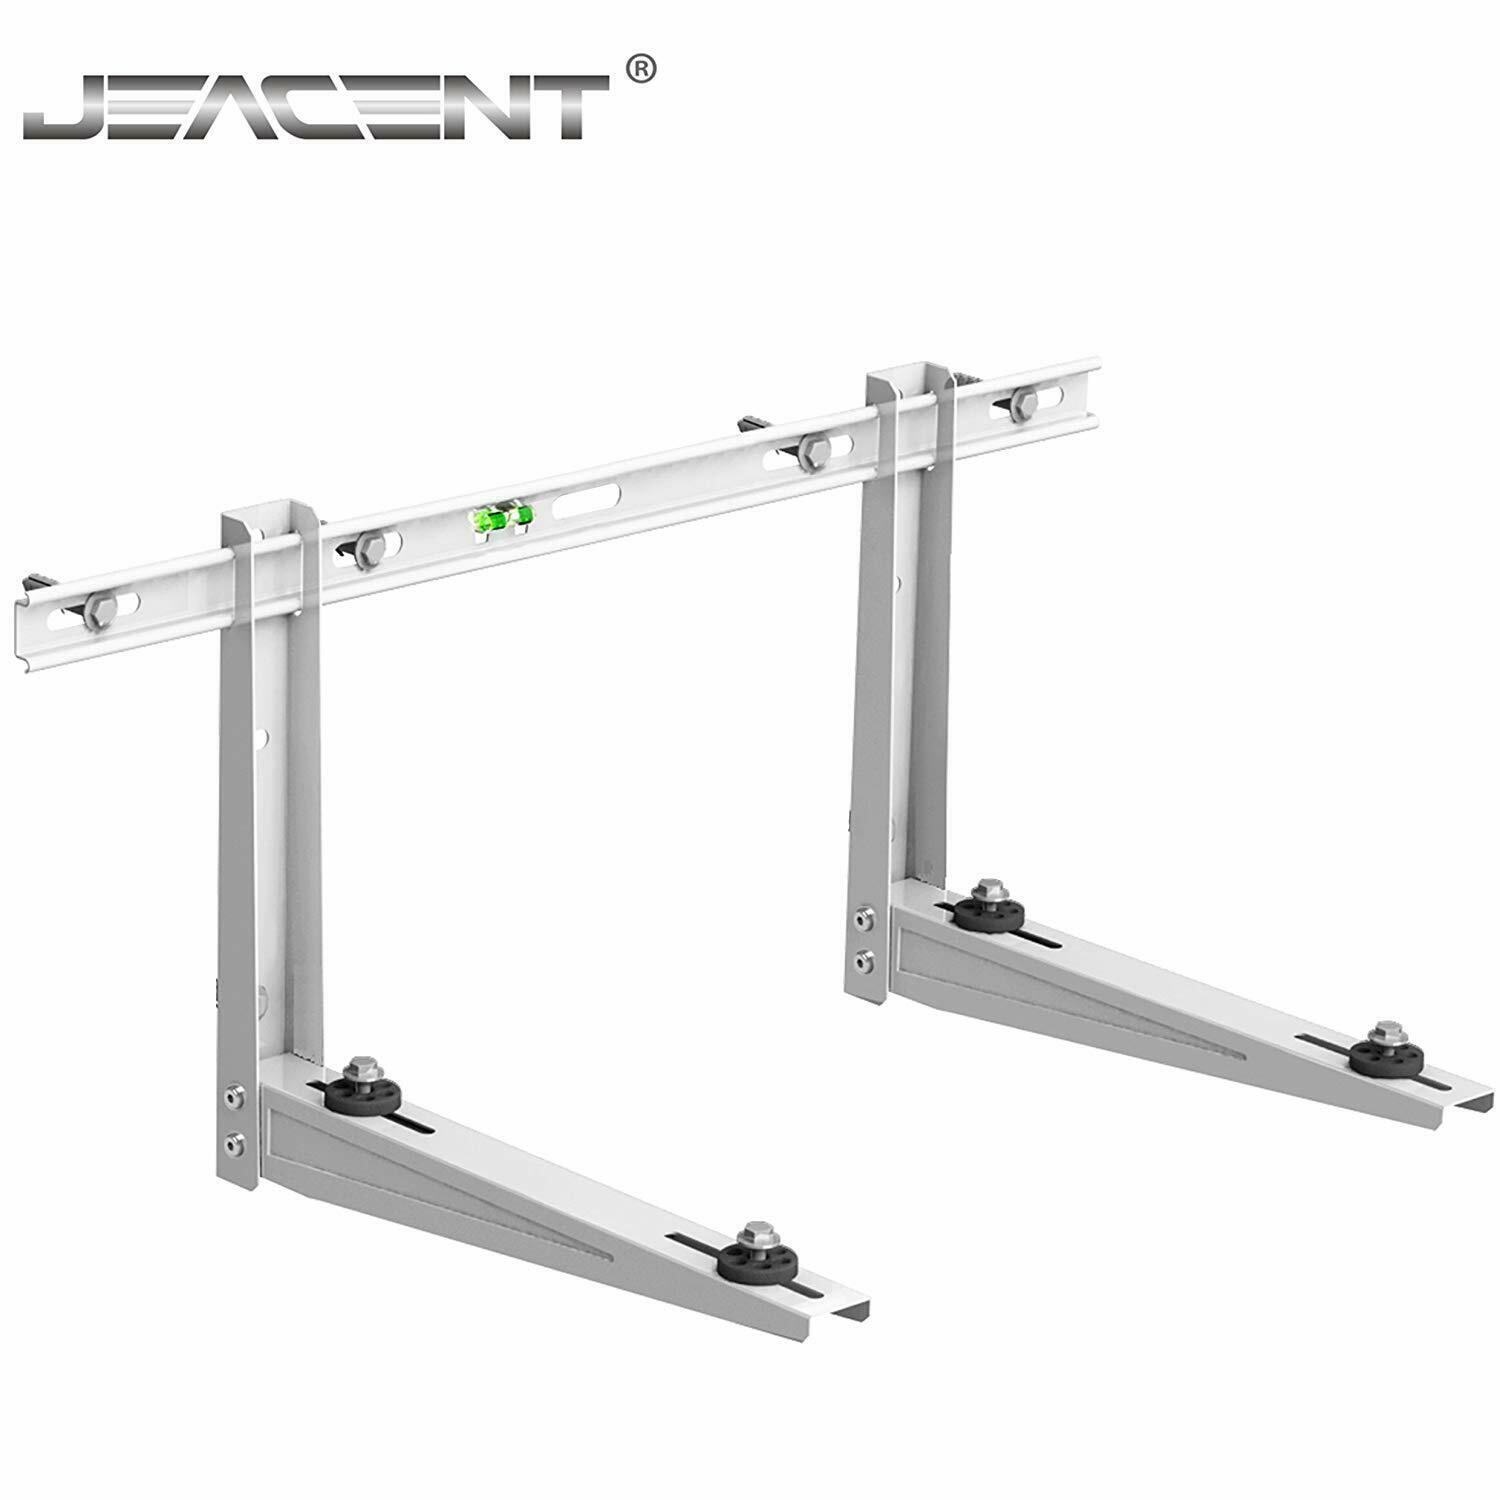 Universal Wall Mounting Bracket for Mini Split Air Condition